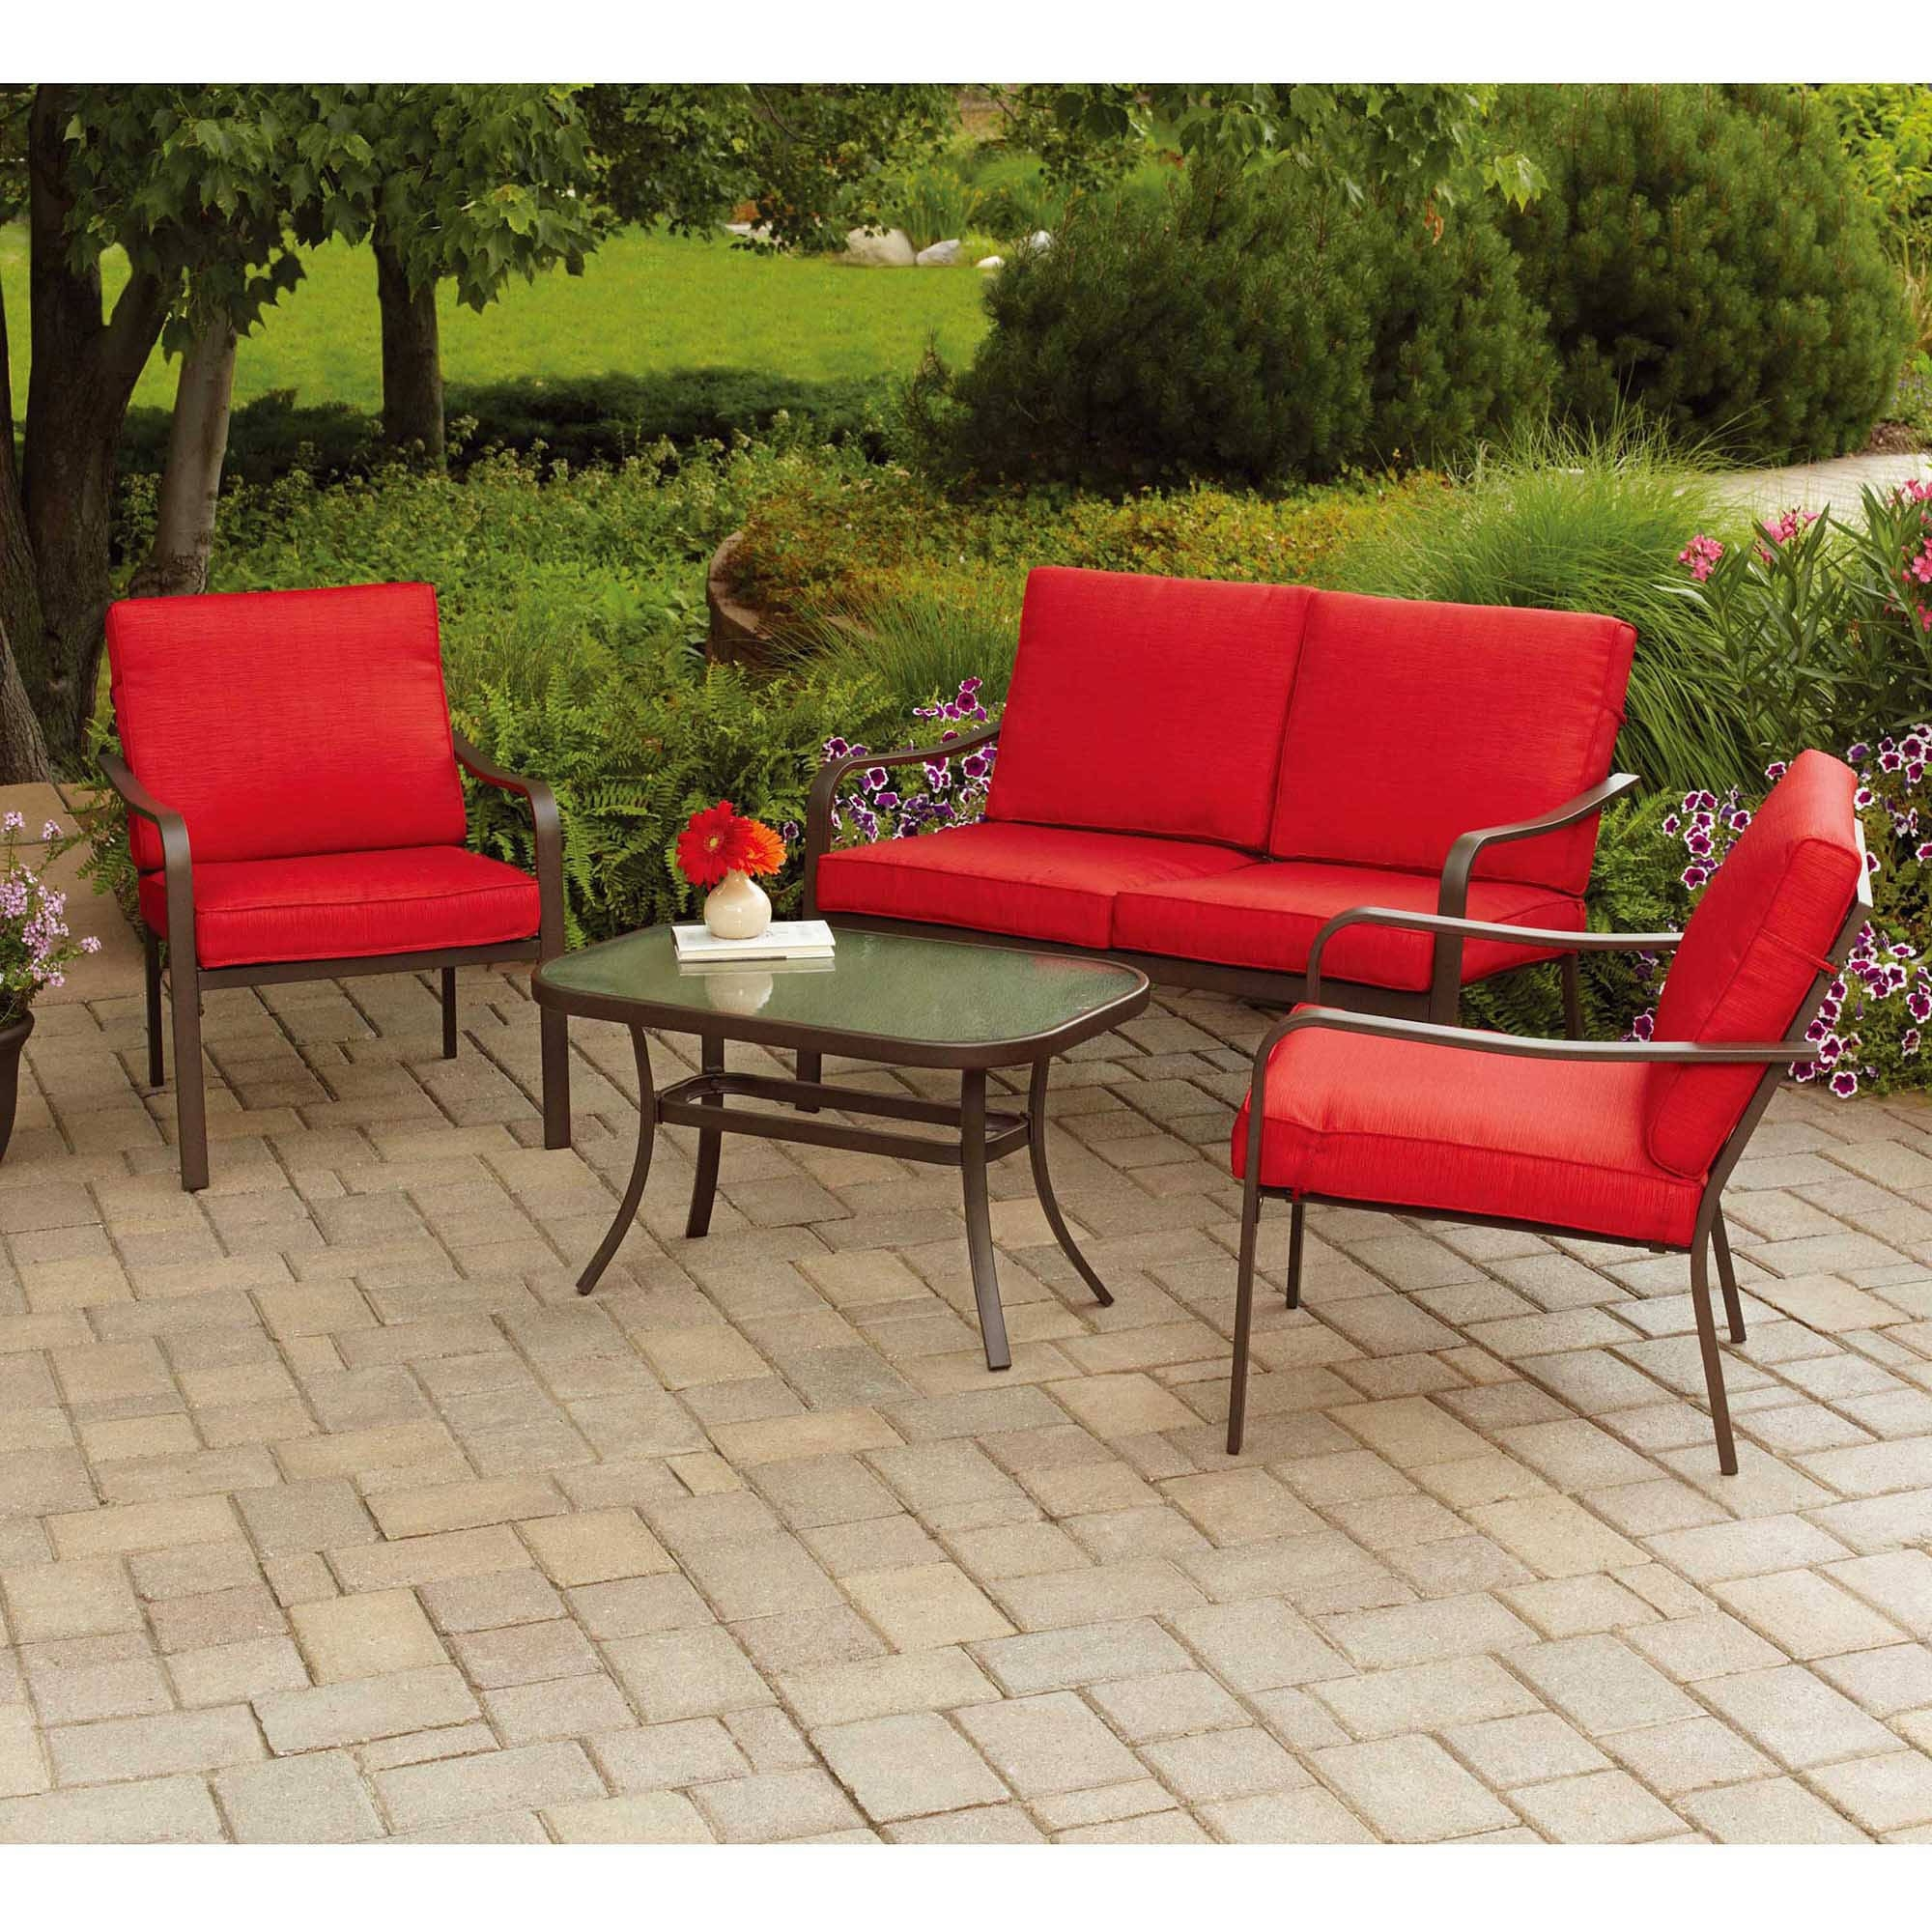 Mainstays Stanton Cushioned 4 Piece Patio Conversation Set, Seats 4 Inside Most Popular Ebay Patio Conversation Sets (View 11 of 15)